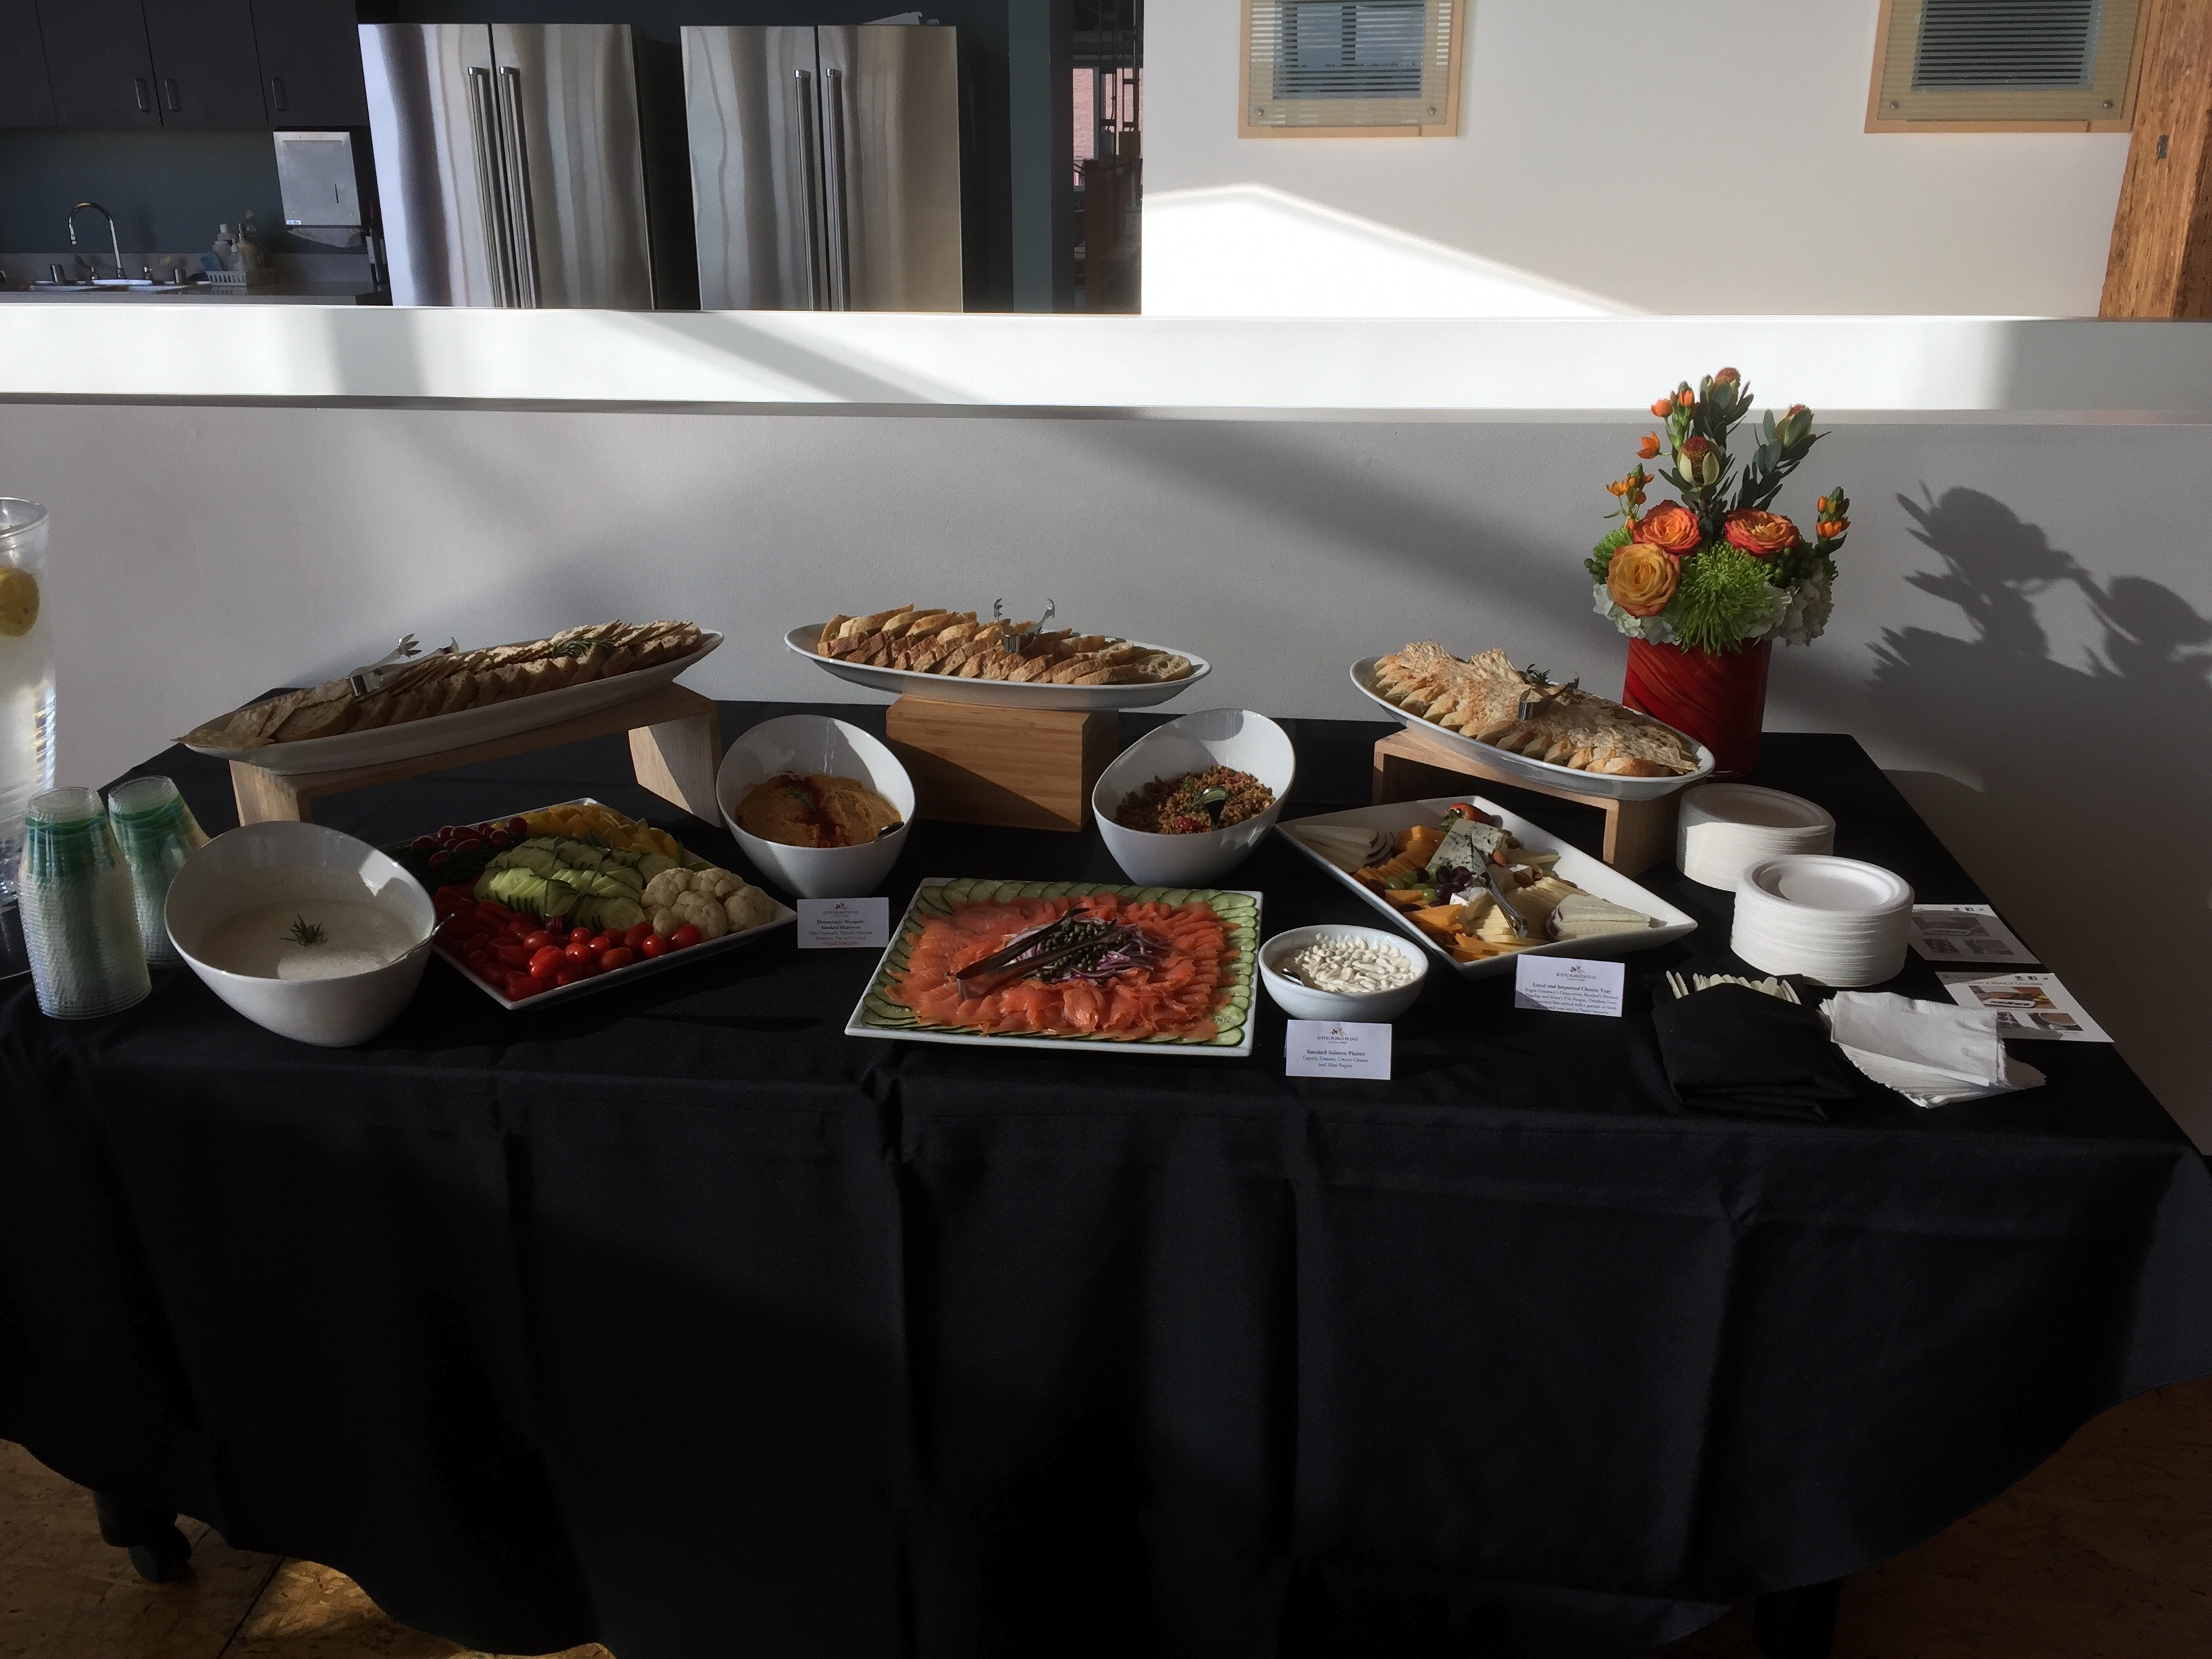 New-Buffet-need-2-crop.jpg#asset:1407